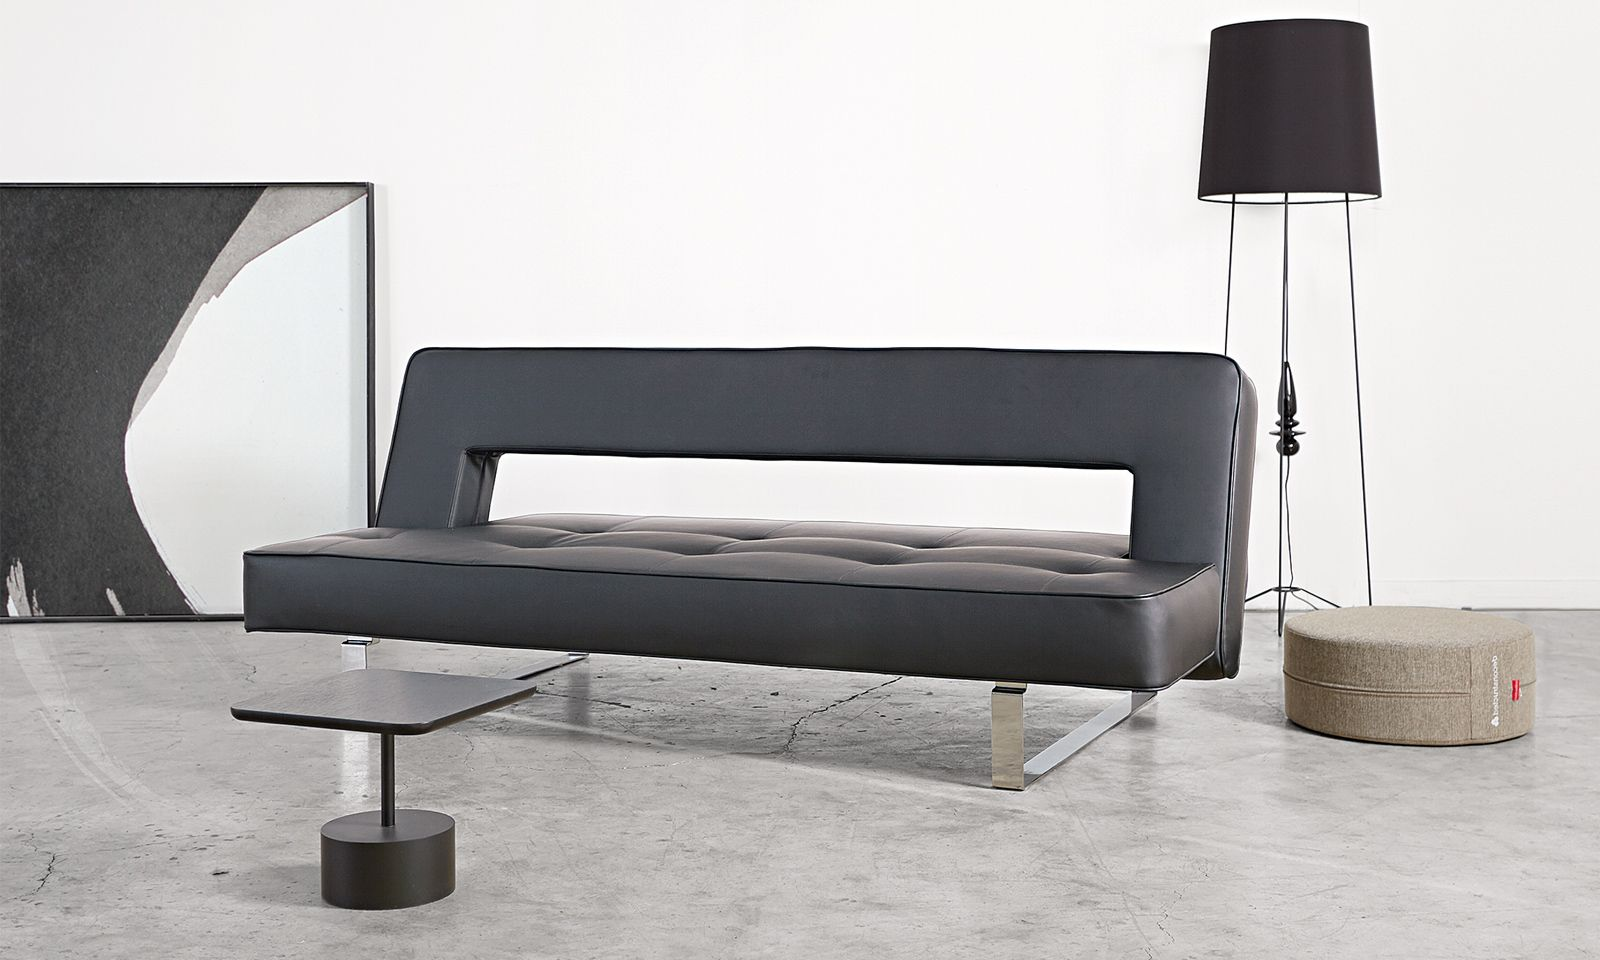 Puzlze Lux Bddsoffa Frn Innovation Living Puzzle Sofa Bed From